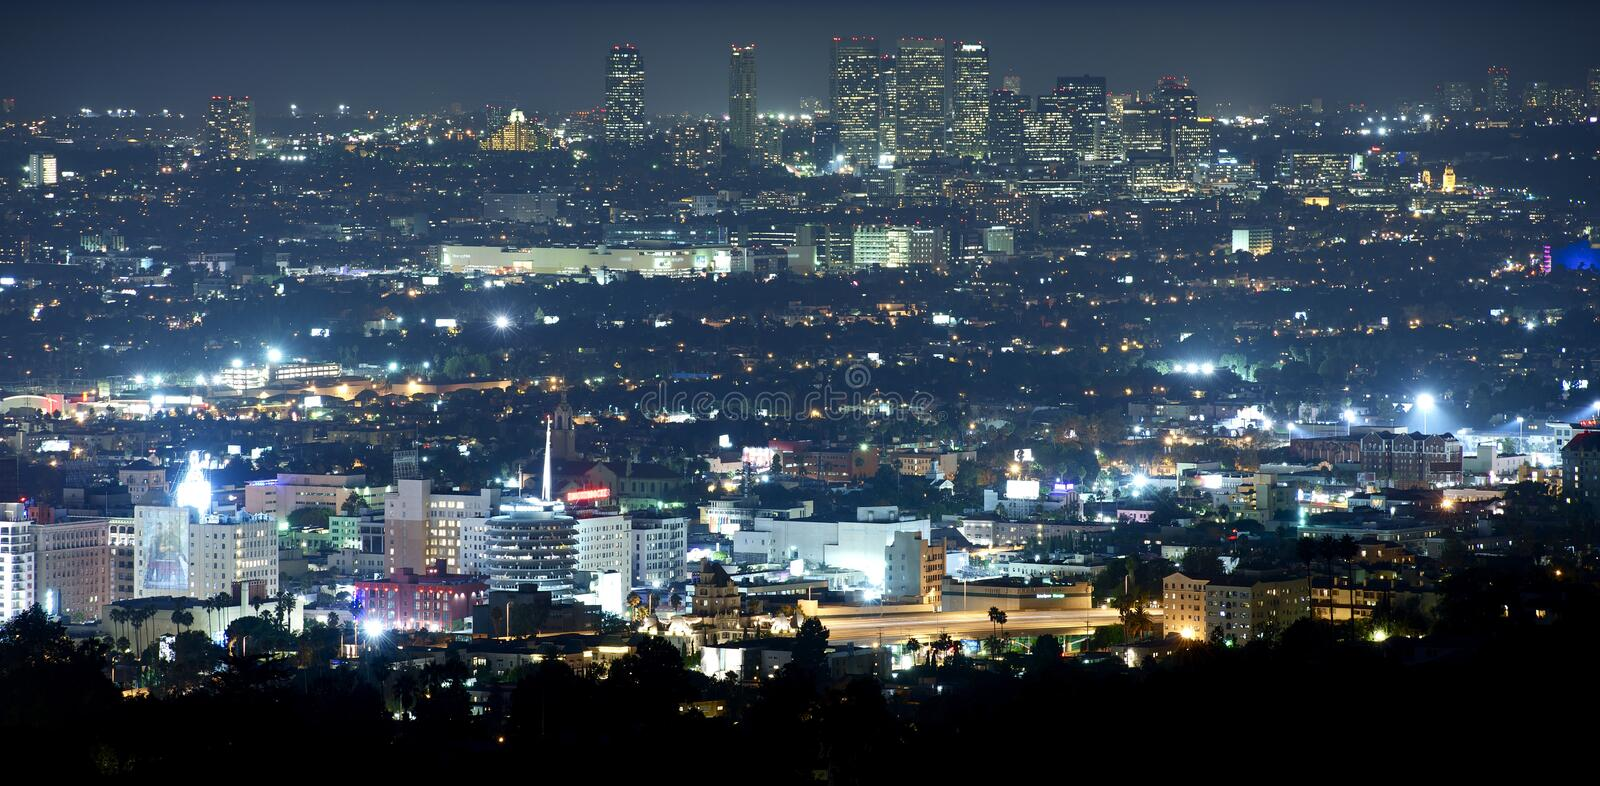 Beverly Hills at Night. Panoramic Night Time Photography. Hollywood and Beverly Hills, California, USA stock images